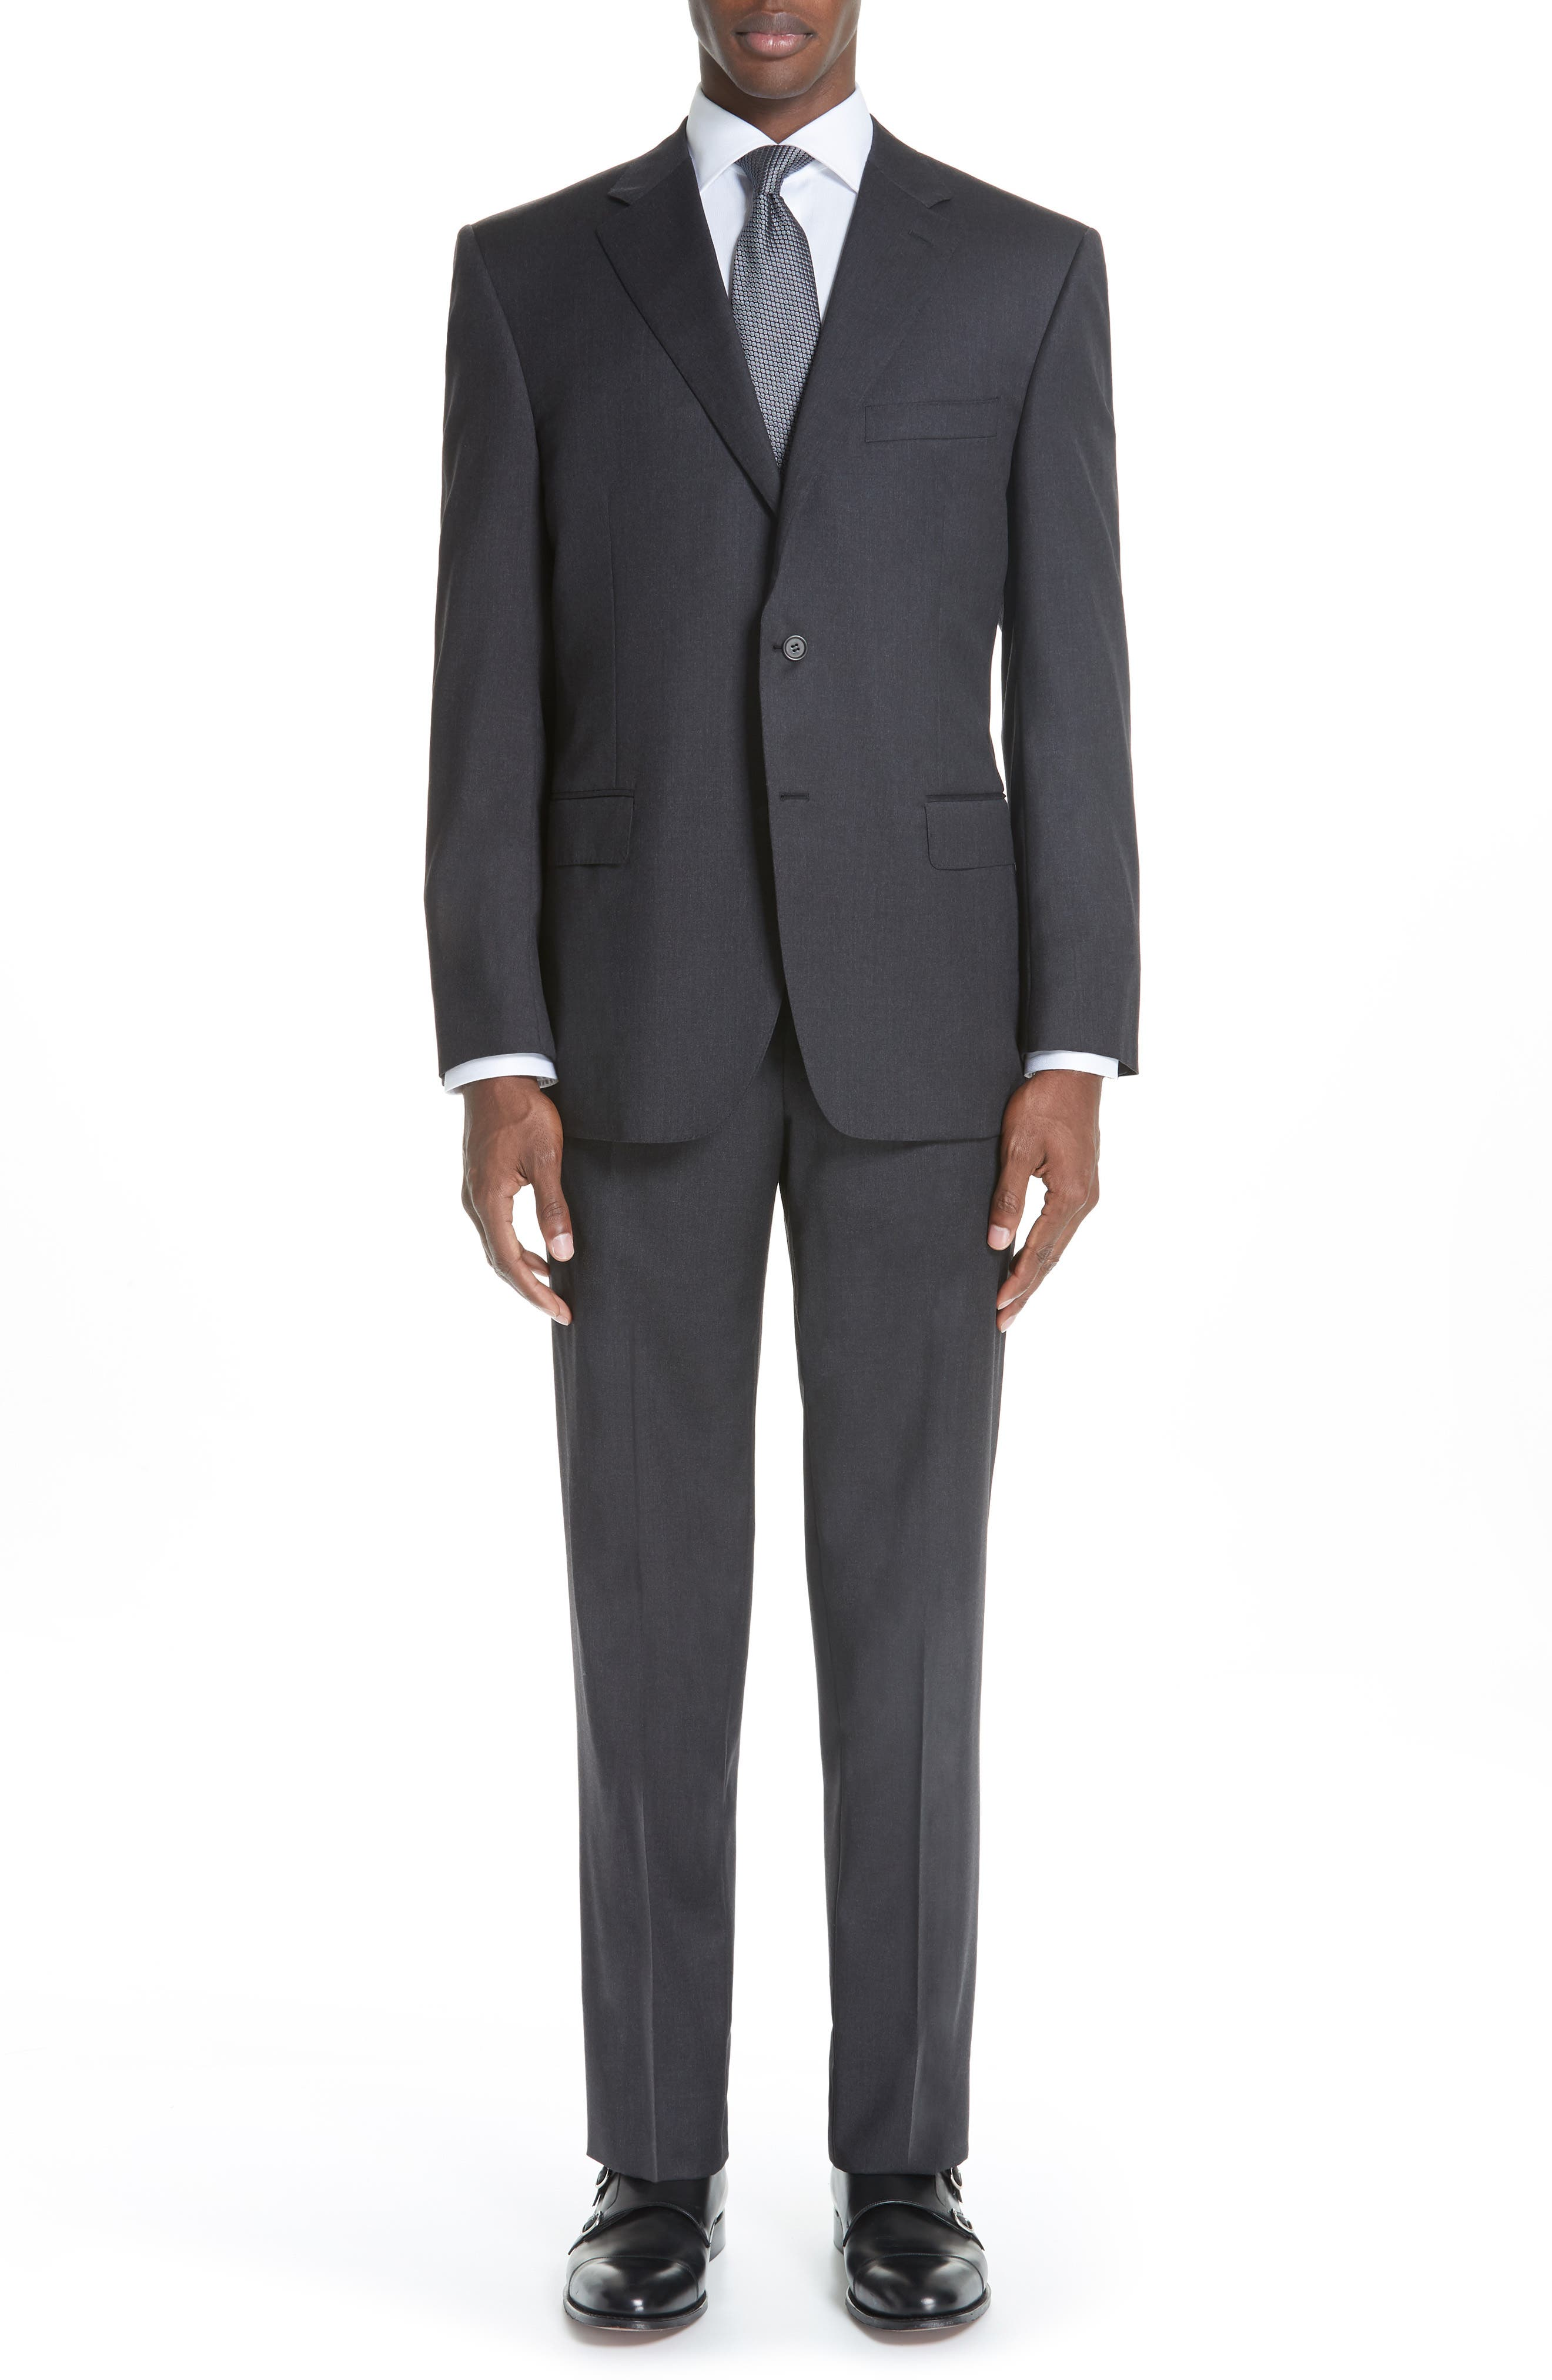 CANALI, Classic Fit Wool Suit, Main thumbnail 1, color, CHARCOAL